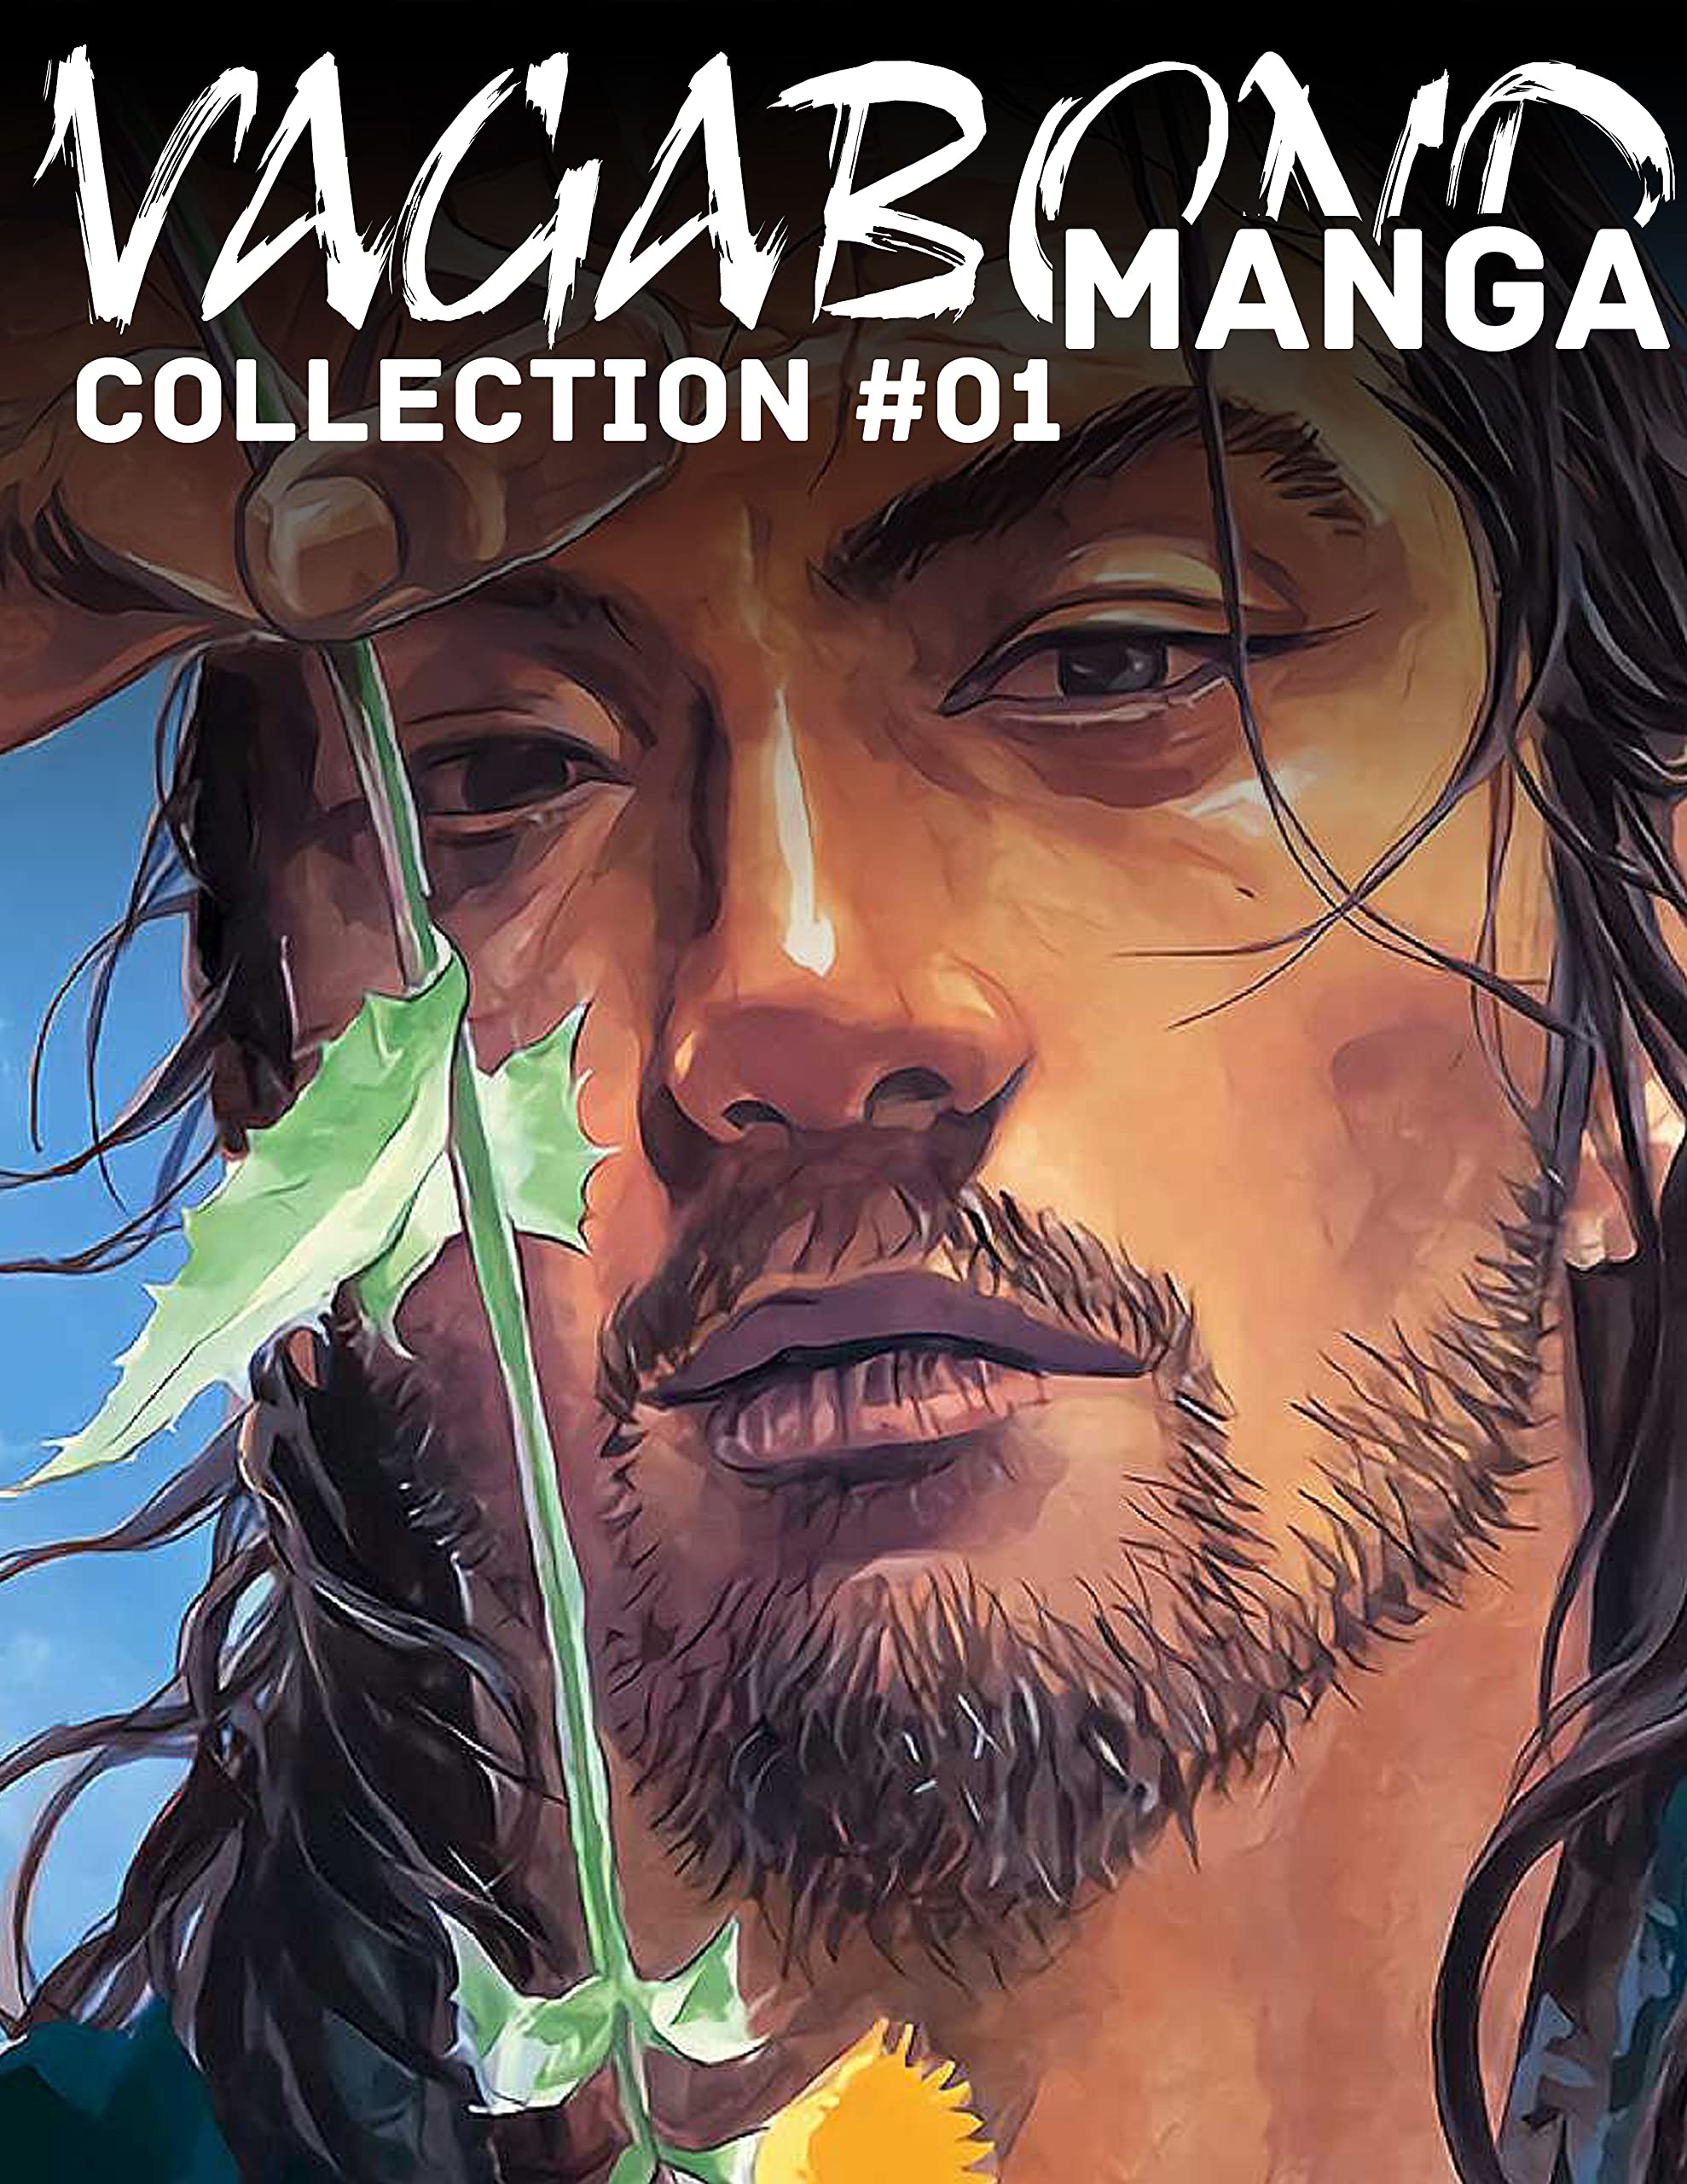 Vagabondd: manga books Box Set Omnibus Vol 1 vagabond manga full box set | For Epic, Historical Fiction, Martial Arts FAN